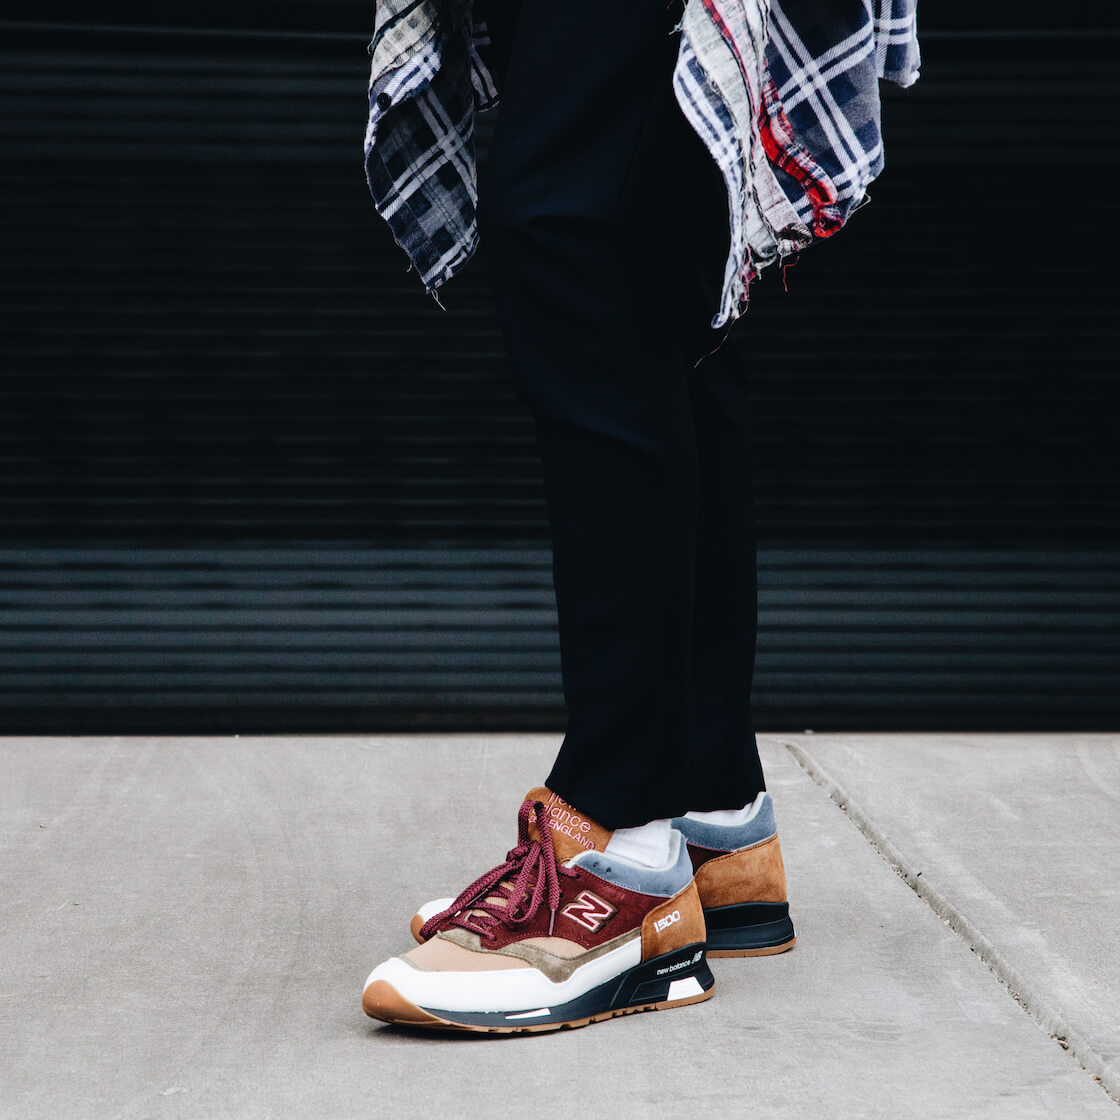 New Balance 1500 shoes with orslow jeans and Needles flannel